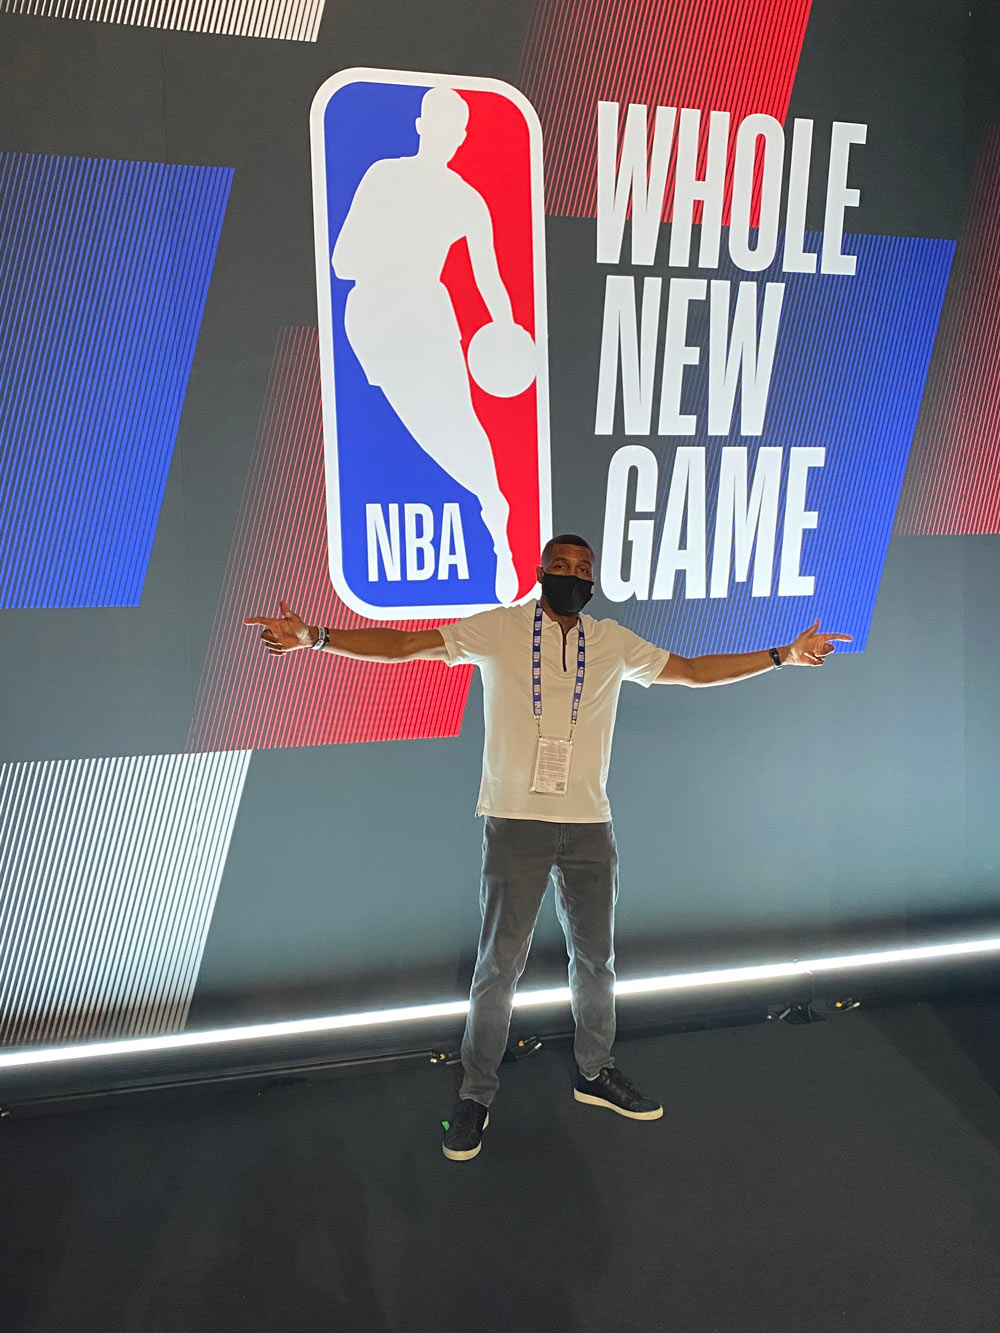 Leroy Sims wearing a mask in front of NBA sign inside the NBA bubble.